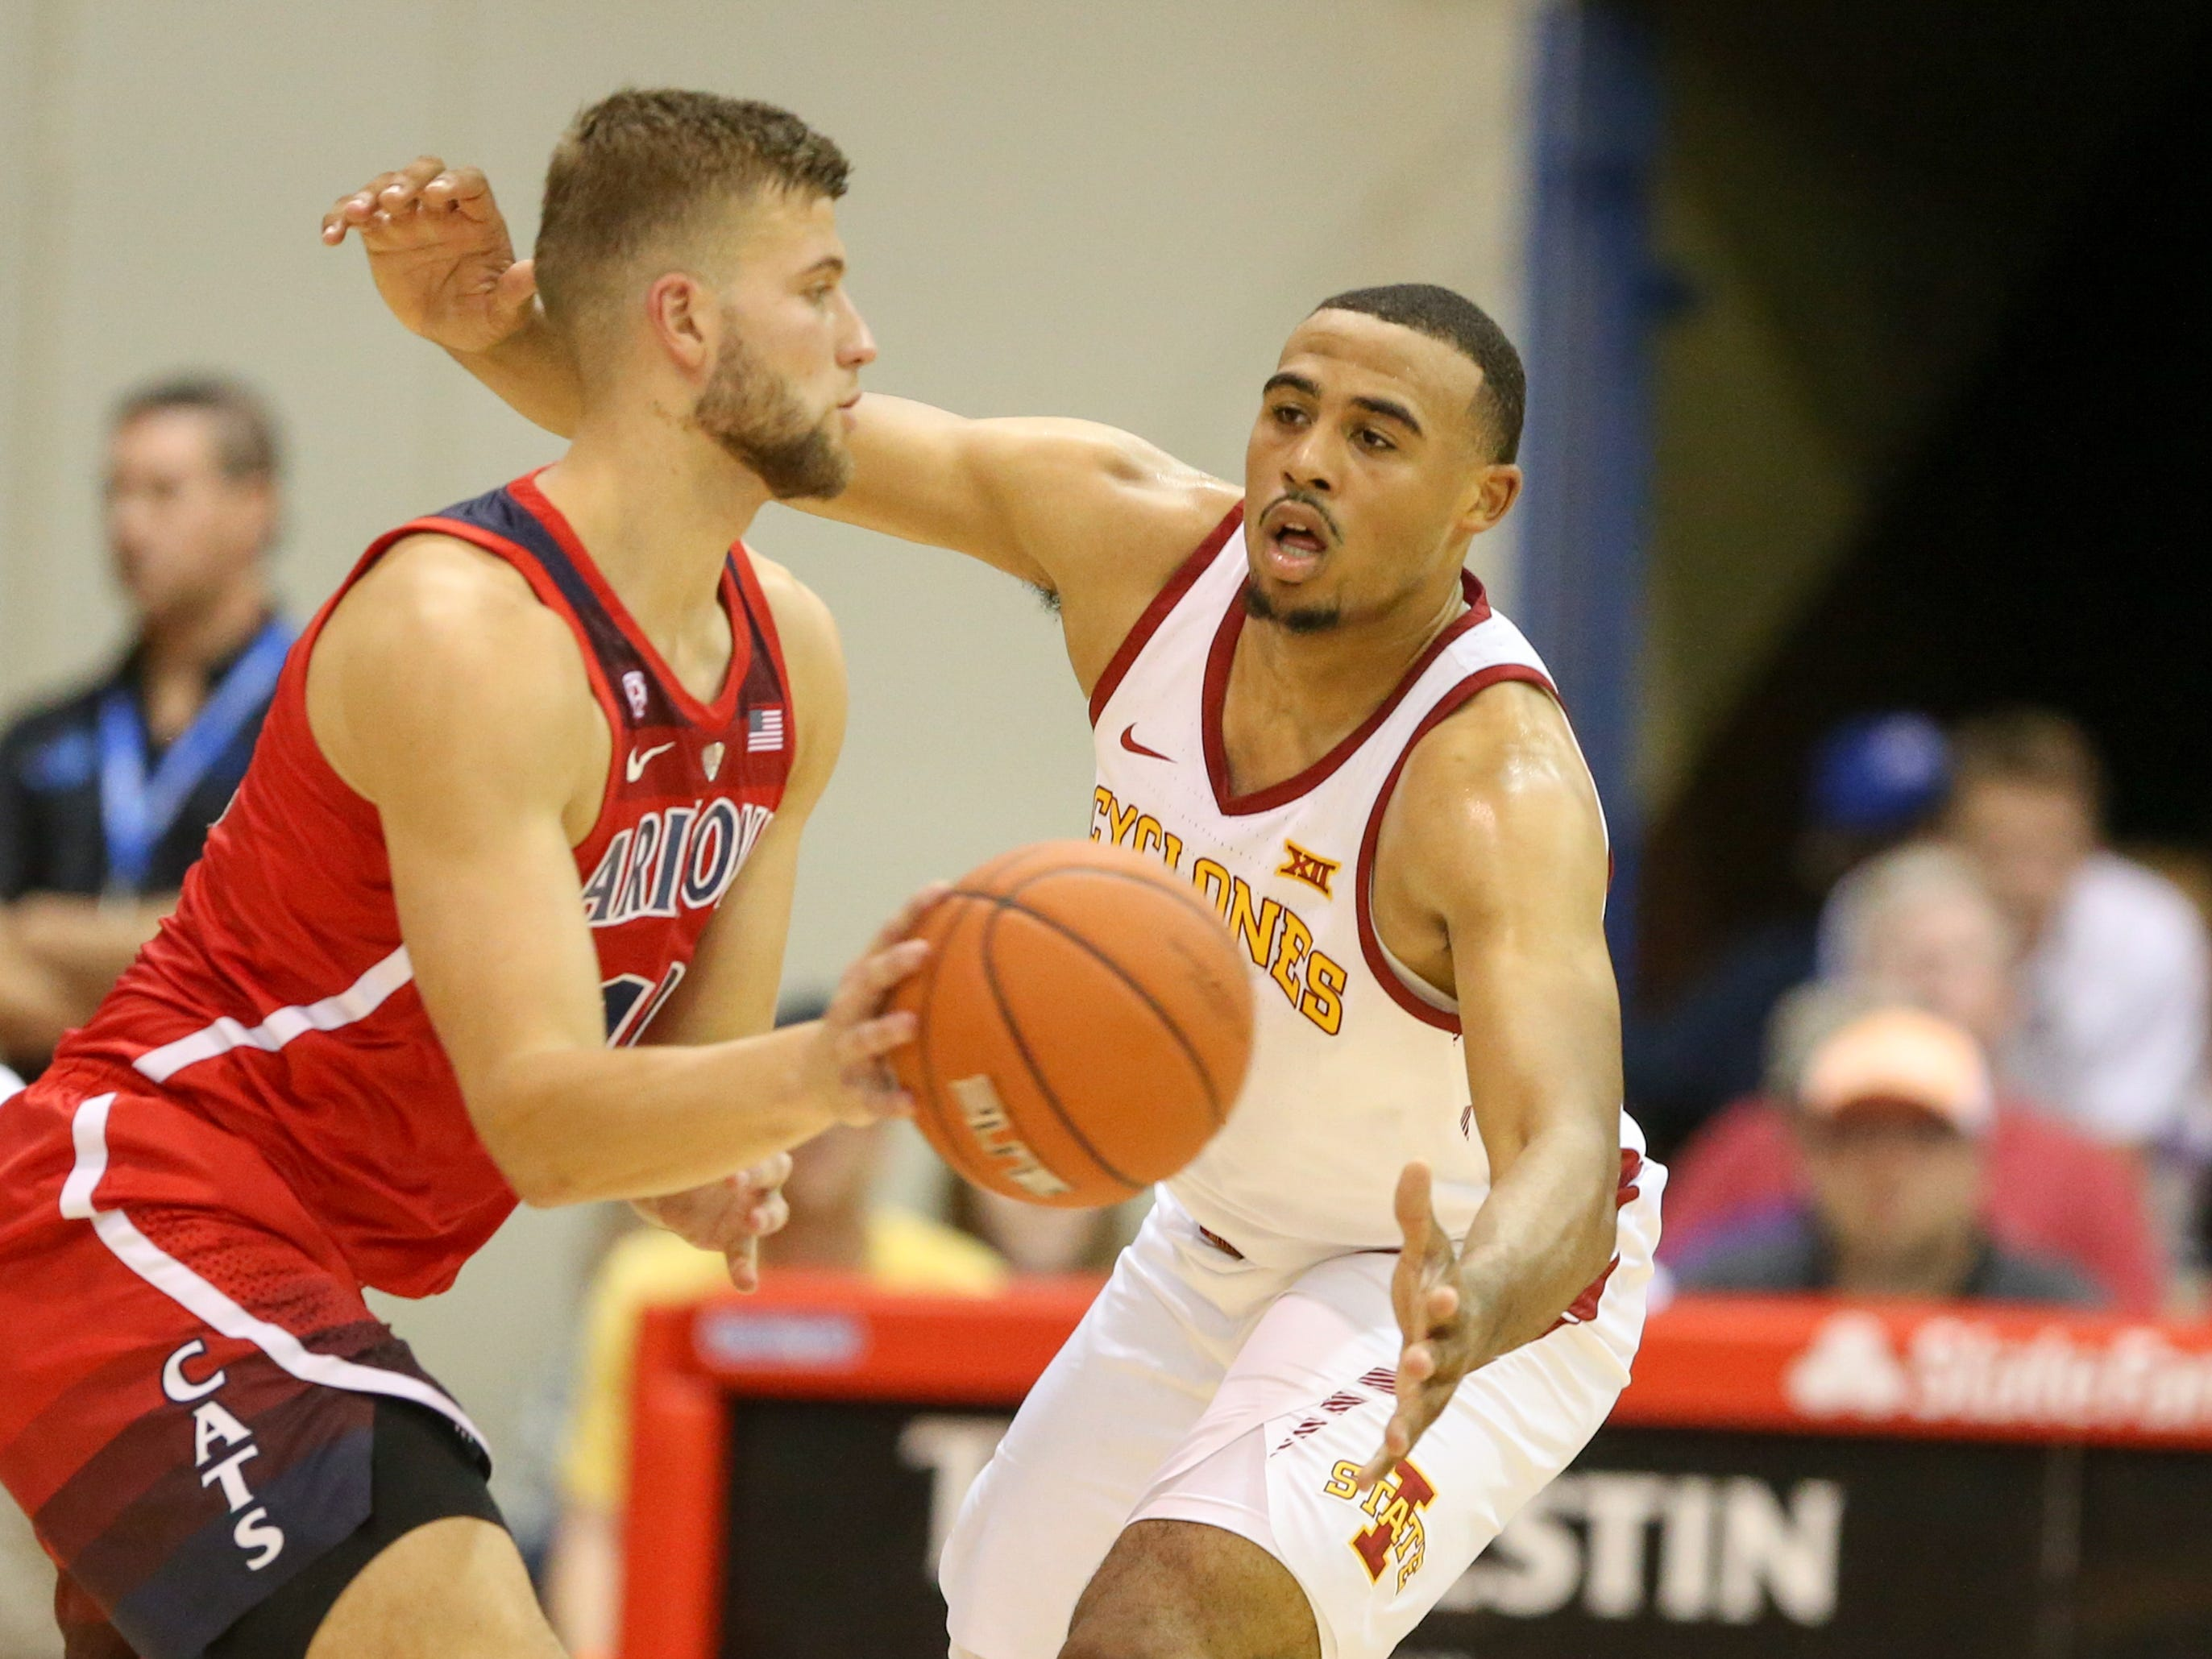 Talen Horton-Tucker #11 of the Iowa State Cyclones guards Ryan Luther #10 of the Arizona Wildcats during the first half of the game at Lahaina Civic Center on November 19, 2018 in Lahaina, Hawaii.